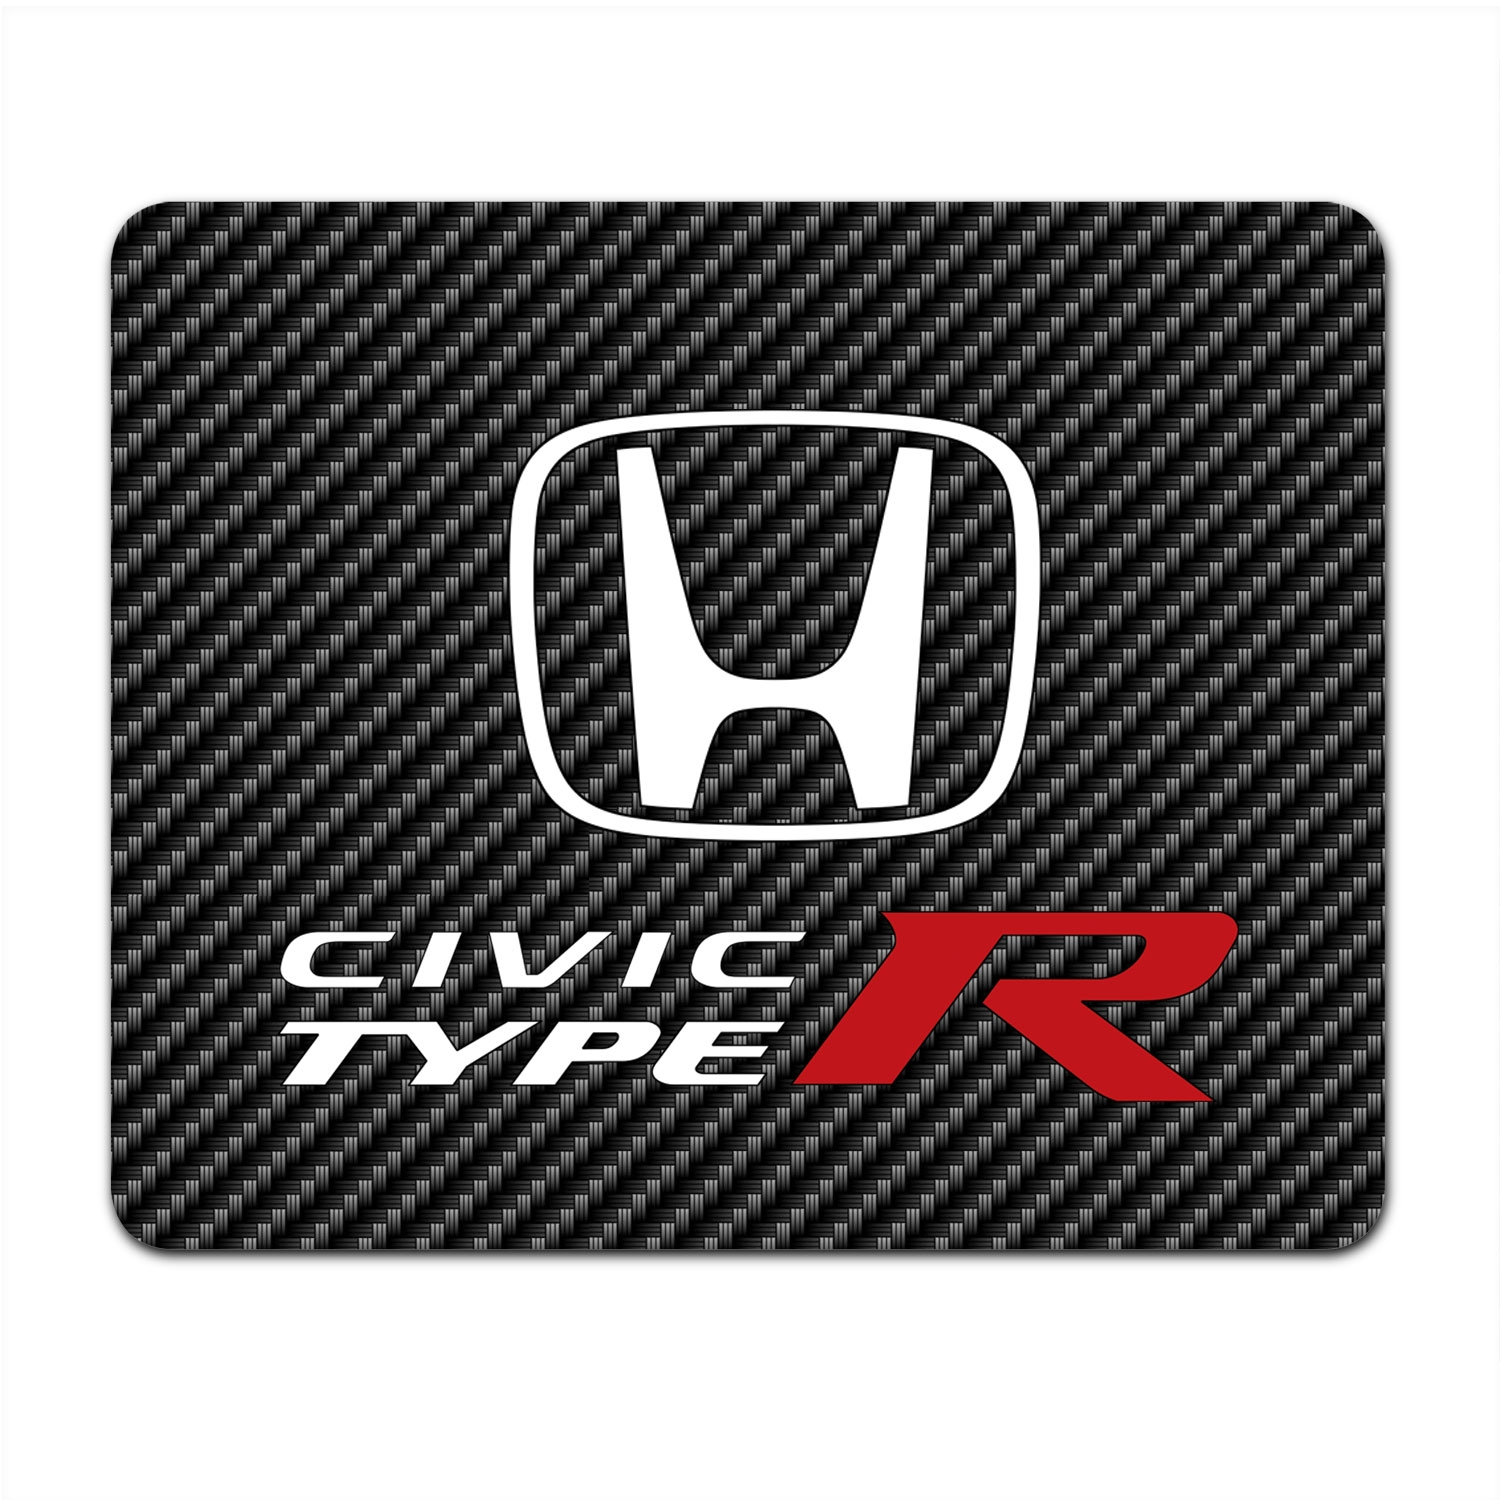 Honda Civic Type-R Black Carbon Fiber Texture Graphic PC Mouse Pad